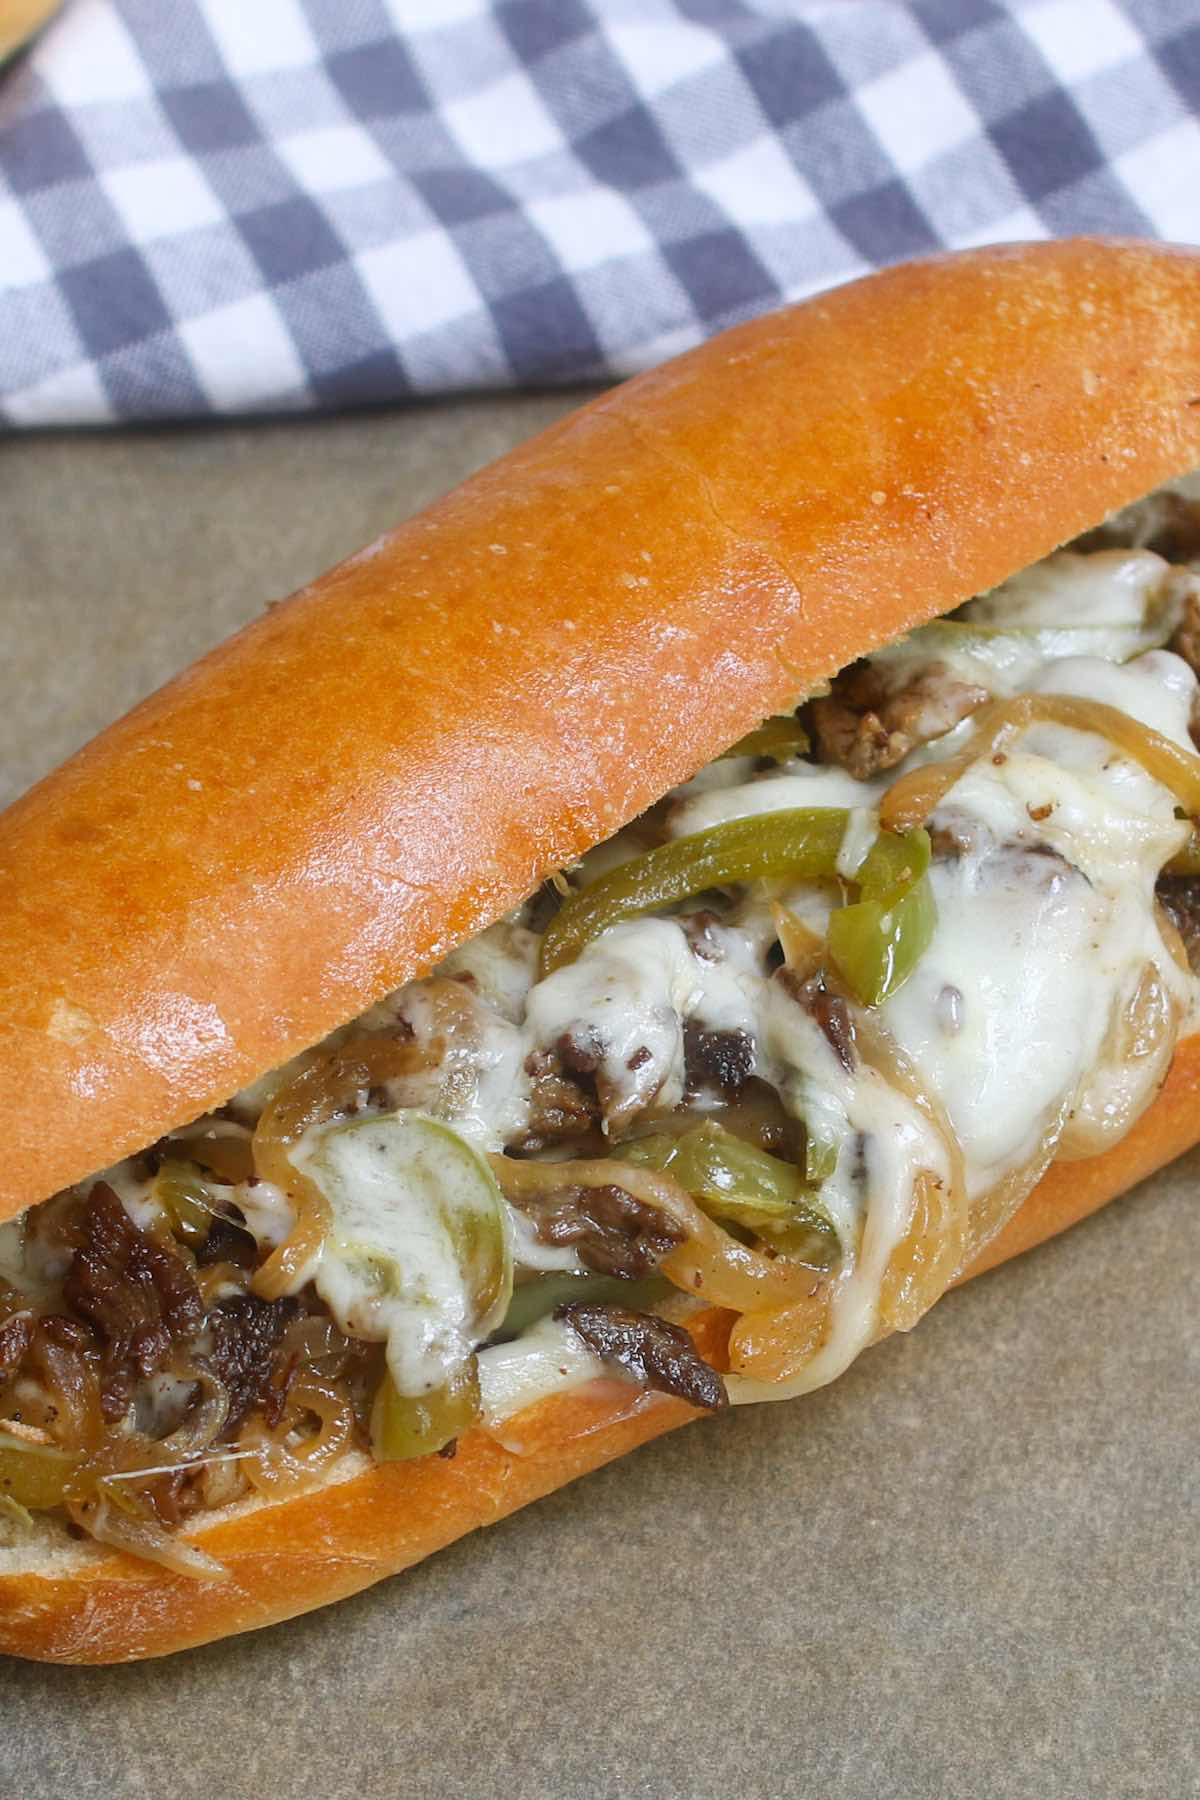 Philly Cheesesteak Recipeis a classic combination of thinly sliced steak and melted cheese in a soft and crusty roll. This philly steak sandwich is easy to make at home and rivals the best philly cheesesteaks in Philadelphia!